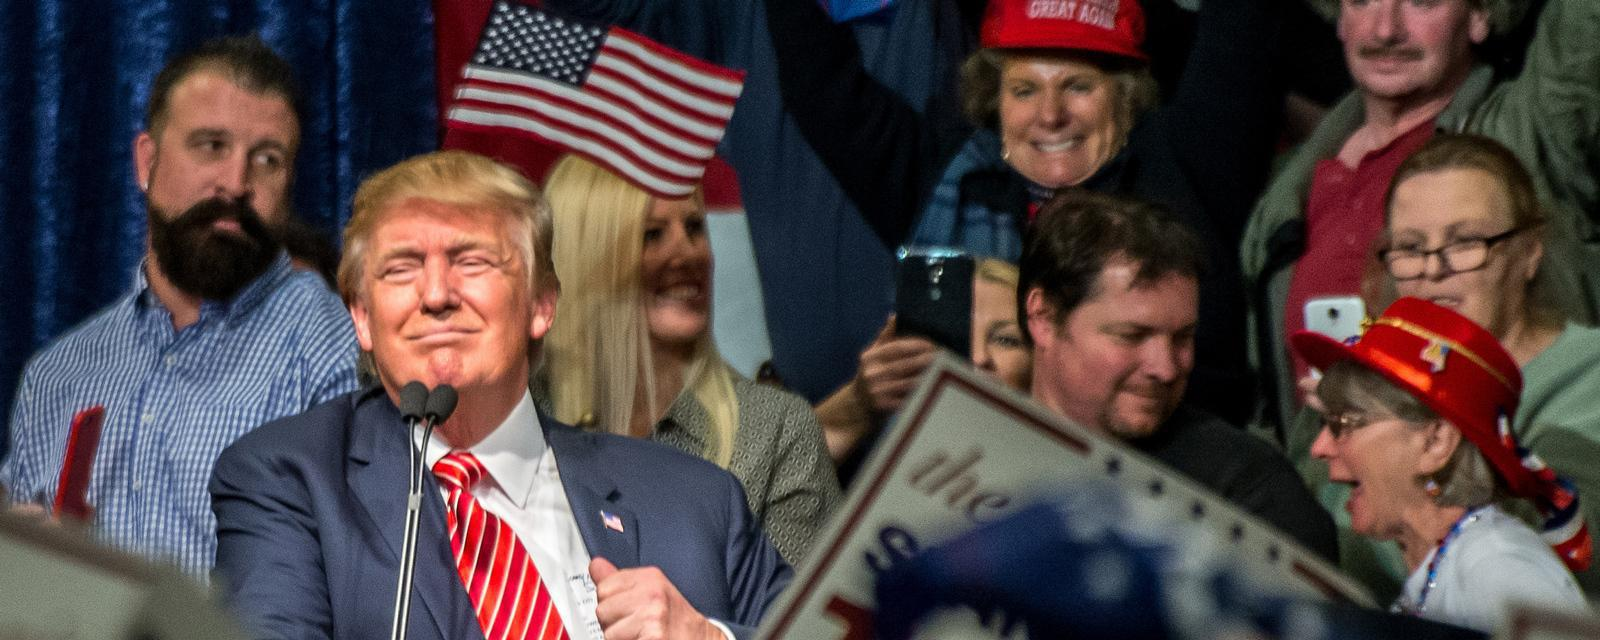 New York Ordered Trump's Charity Foundation to Stop ...